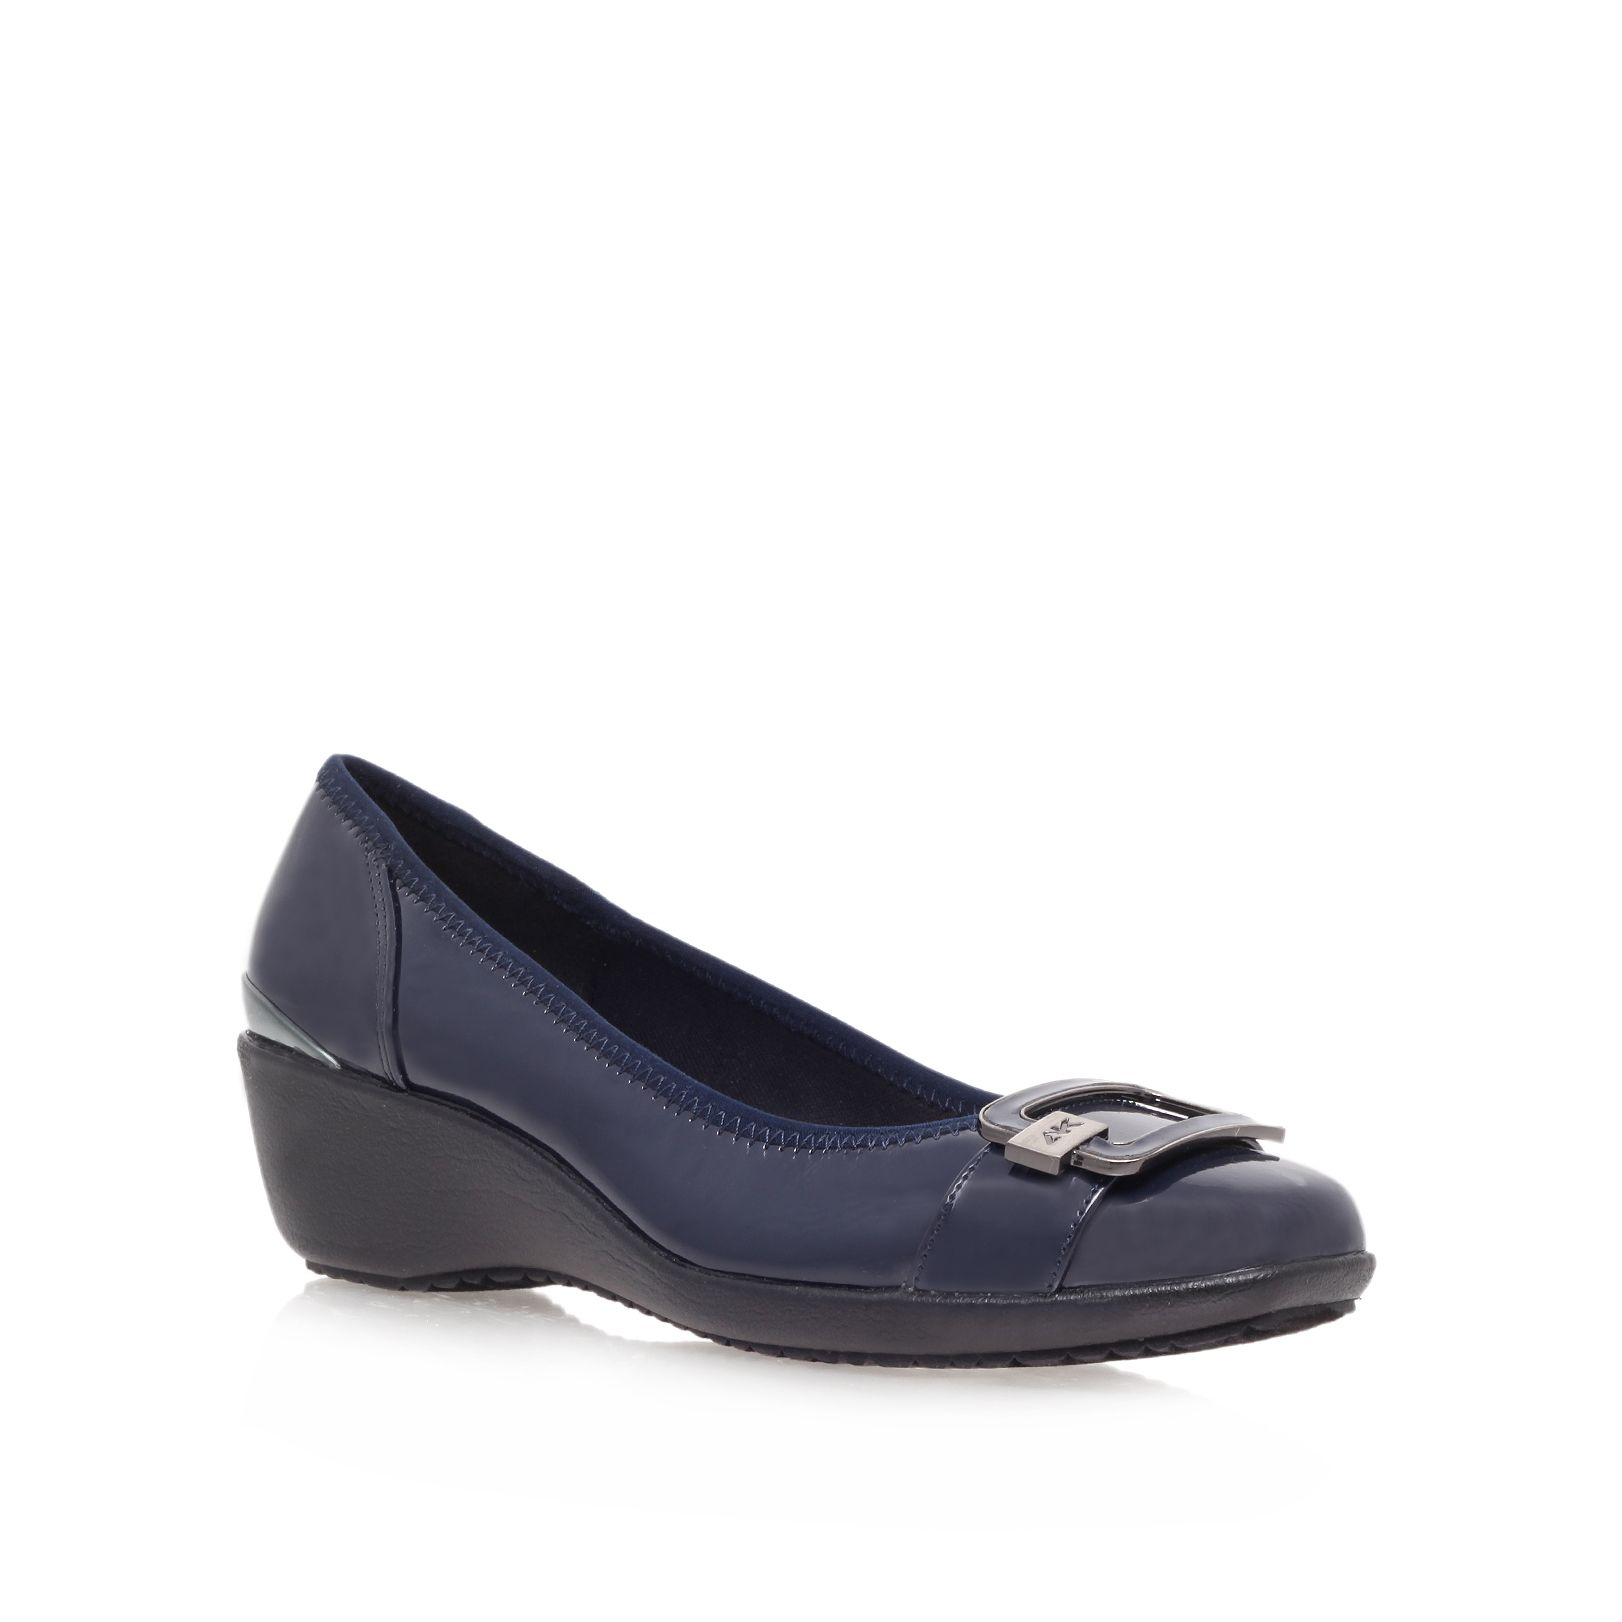 Navy Blue Court Shoes Designer